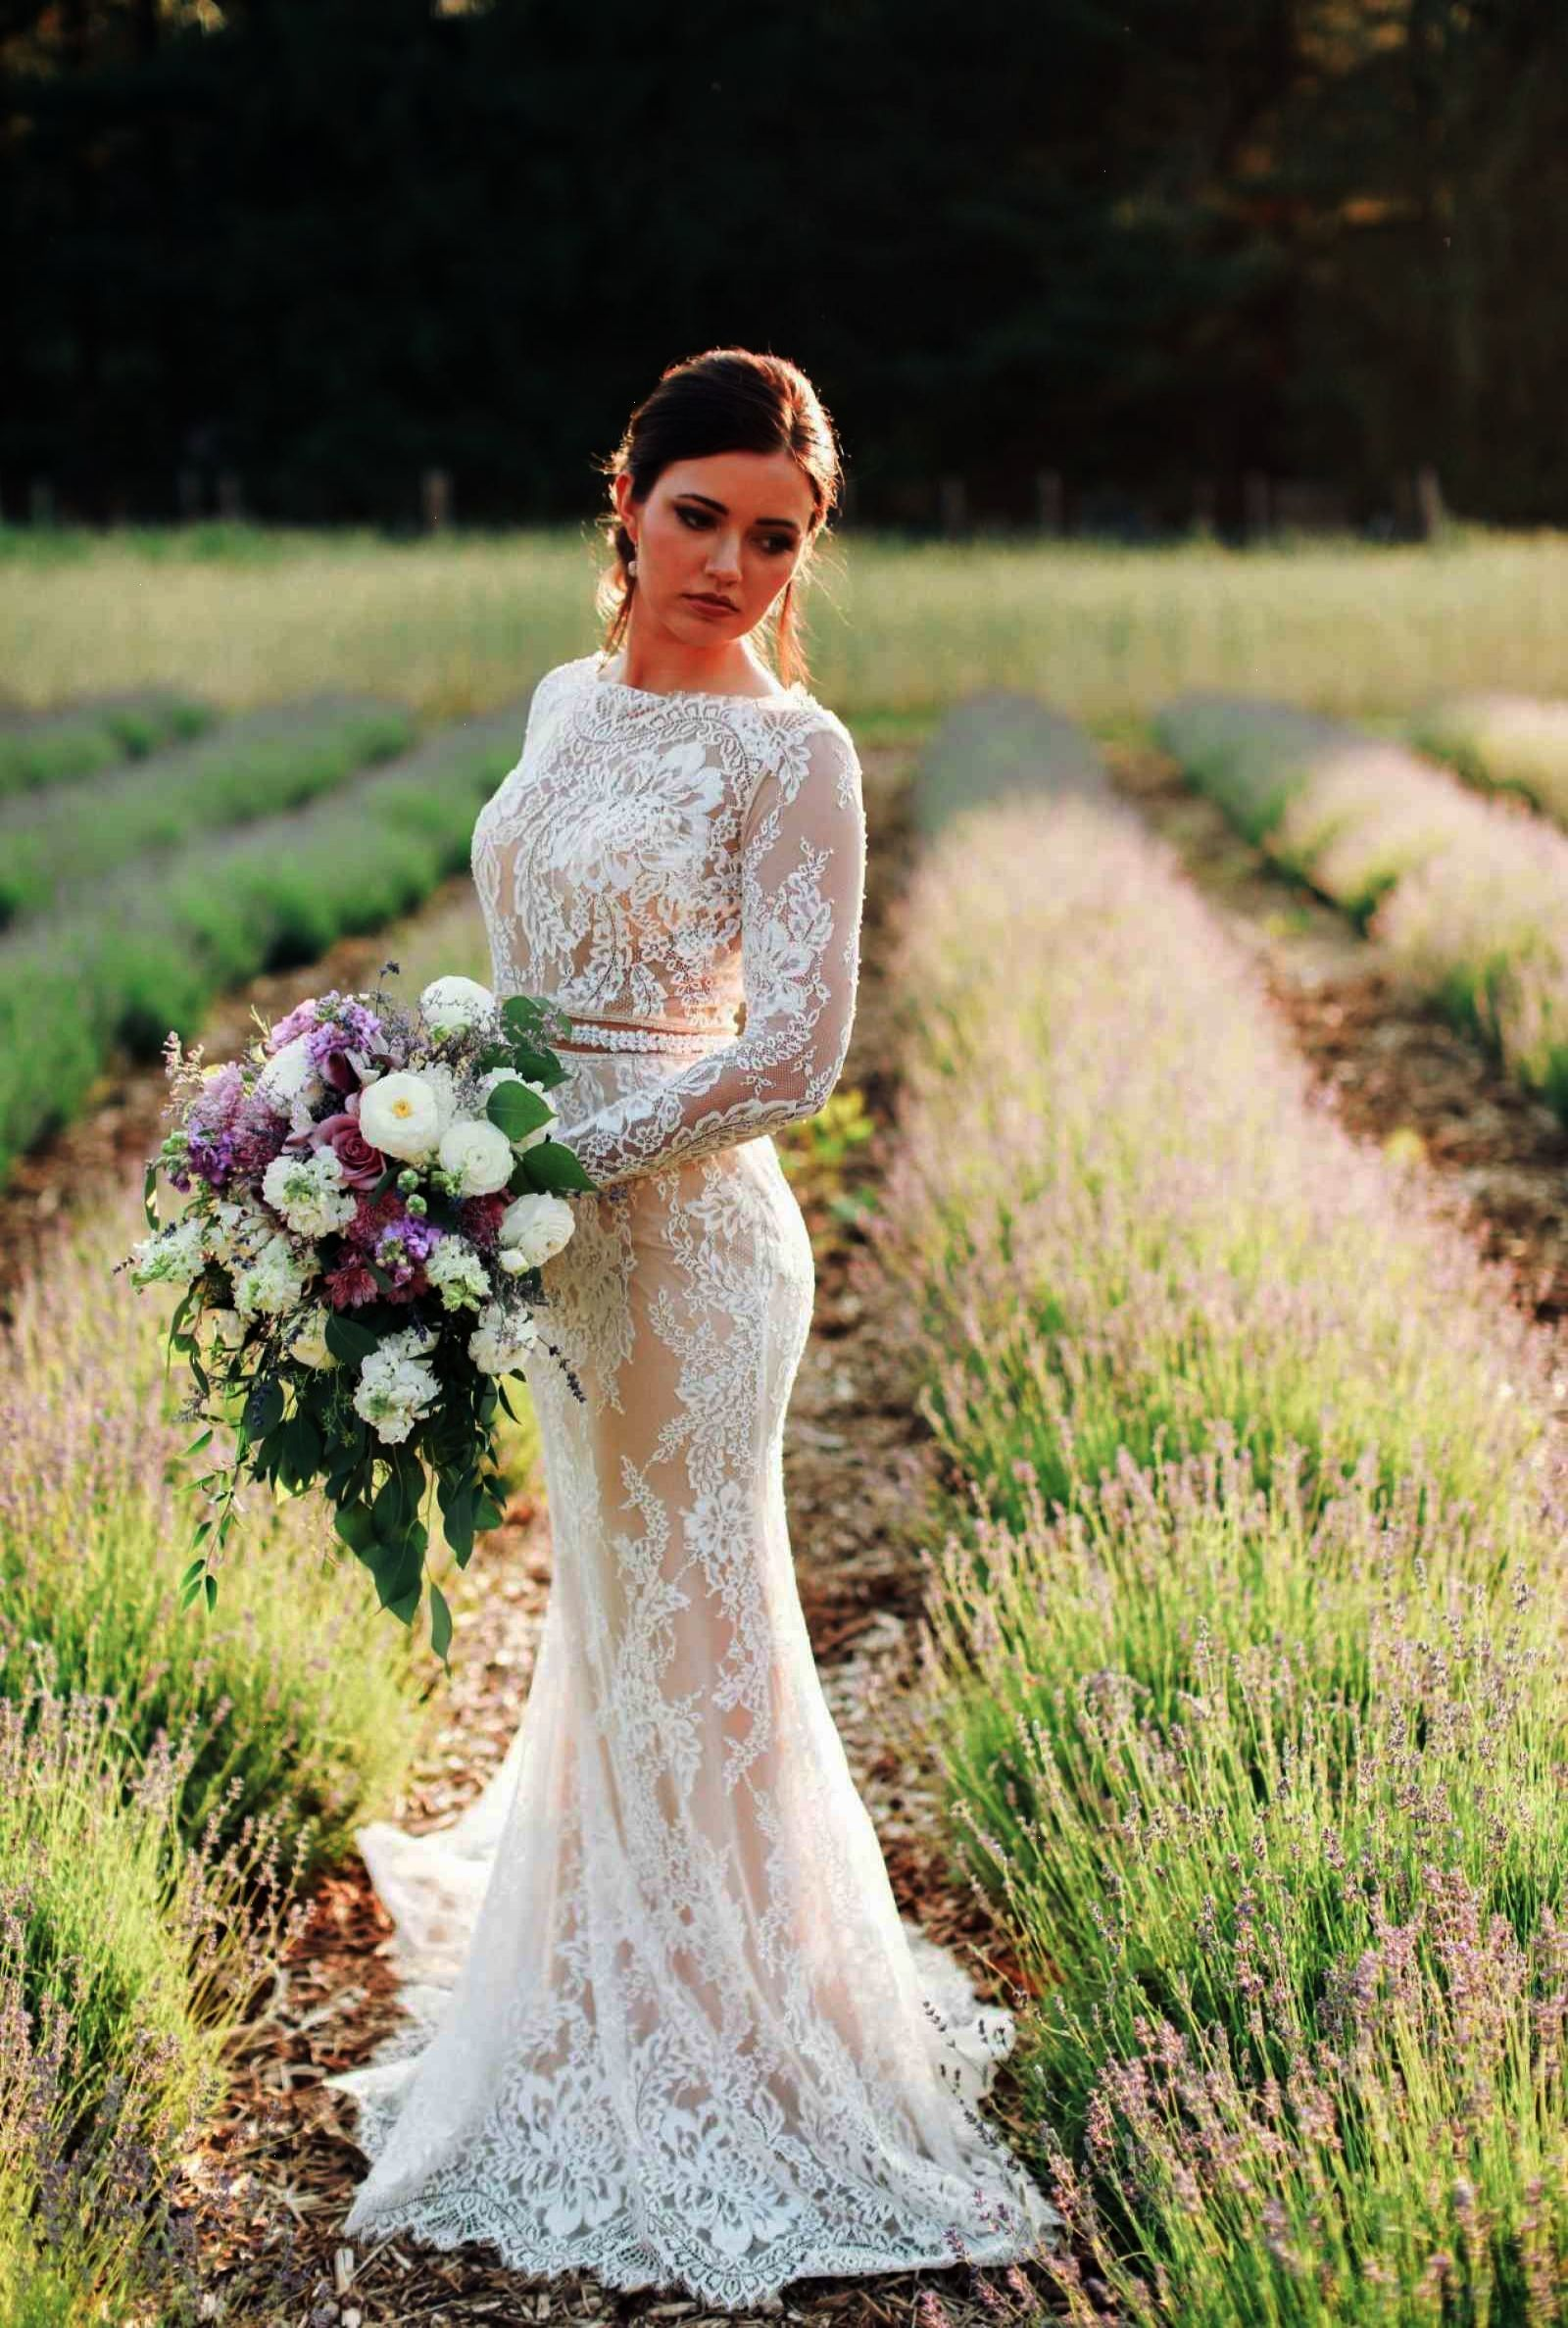 Long sleeve lace wedding dress with cascading purple and white